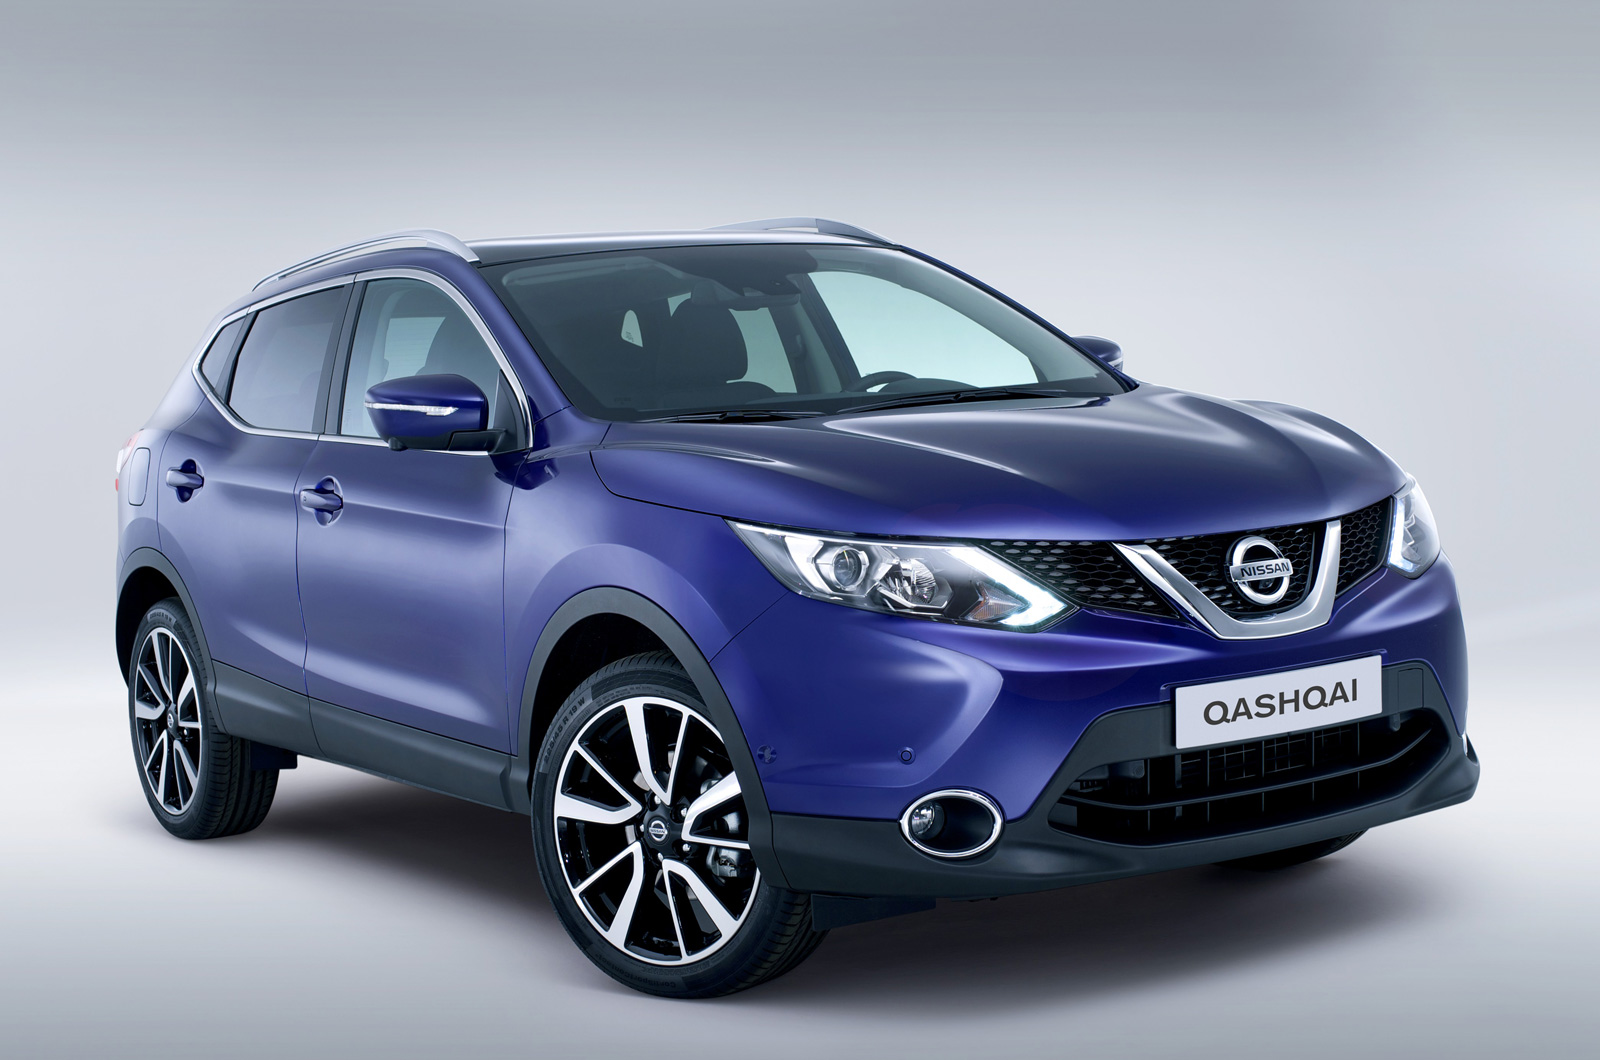 New Nissan Qashqai SUV revealed | Car News | SUV ...